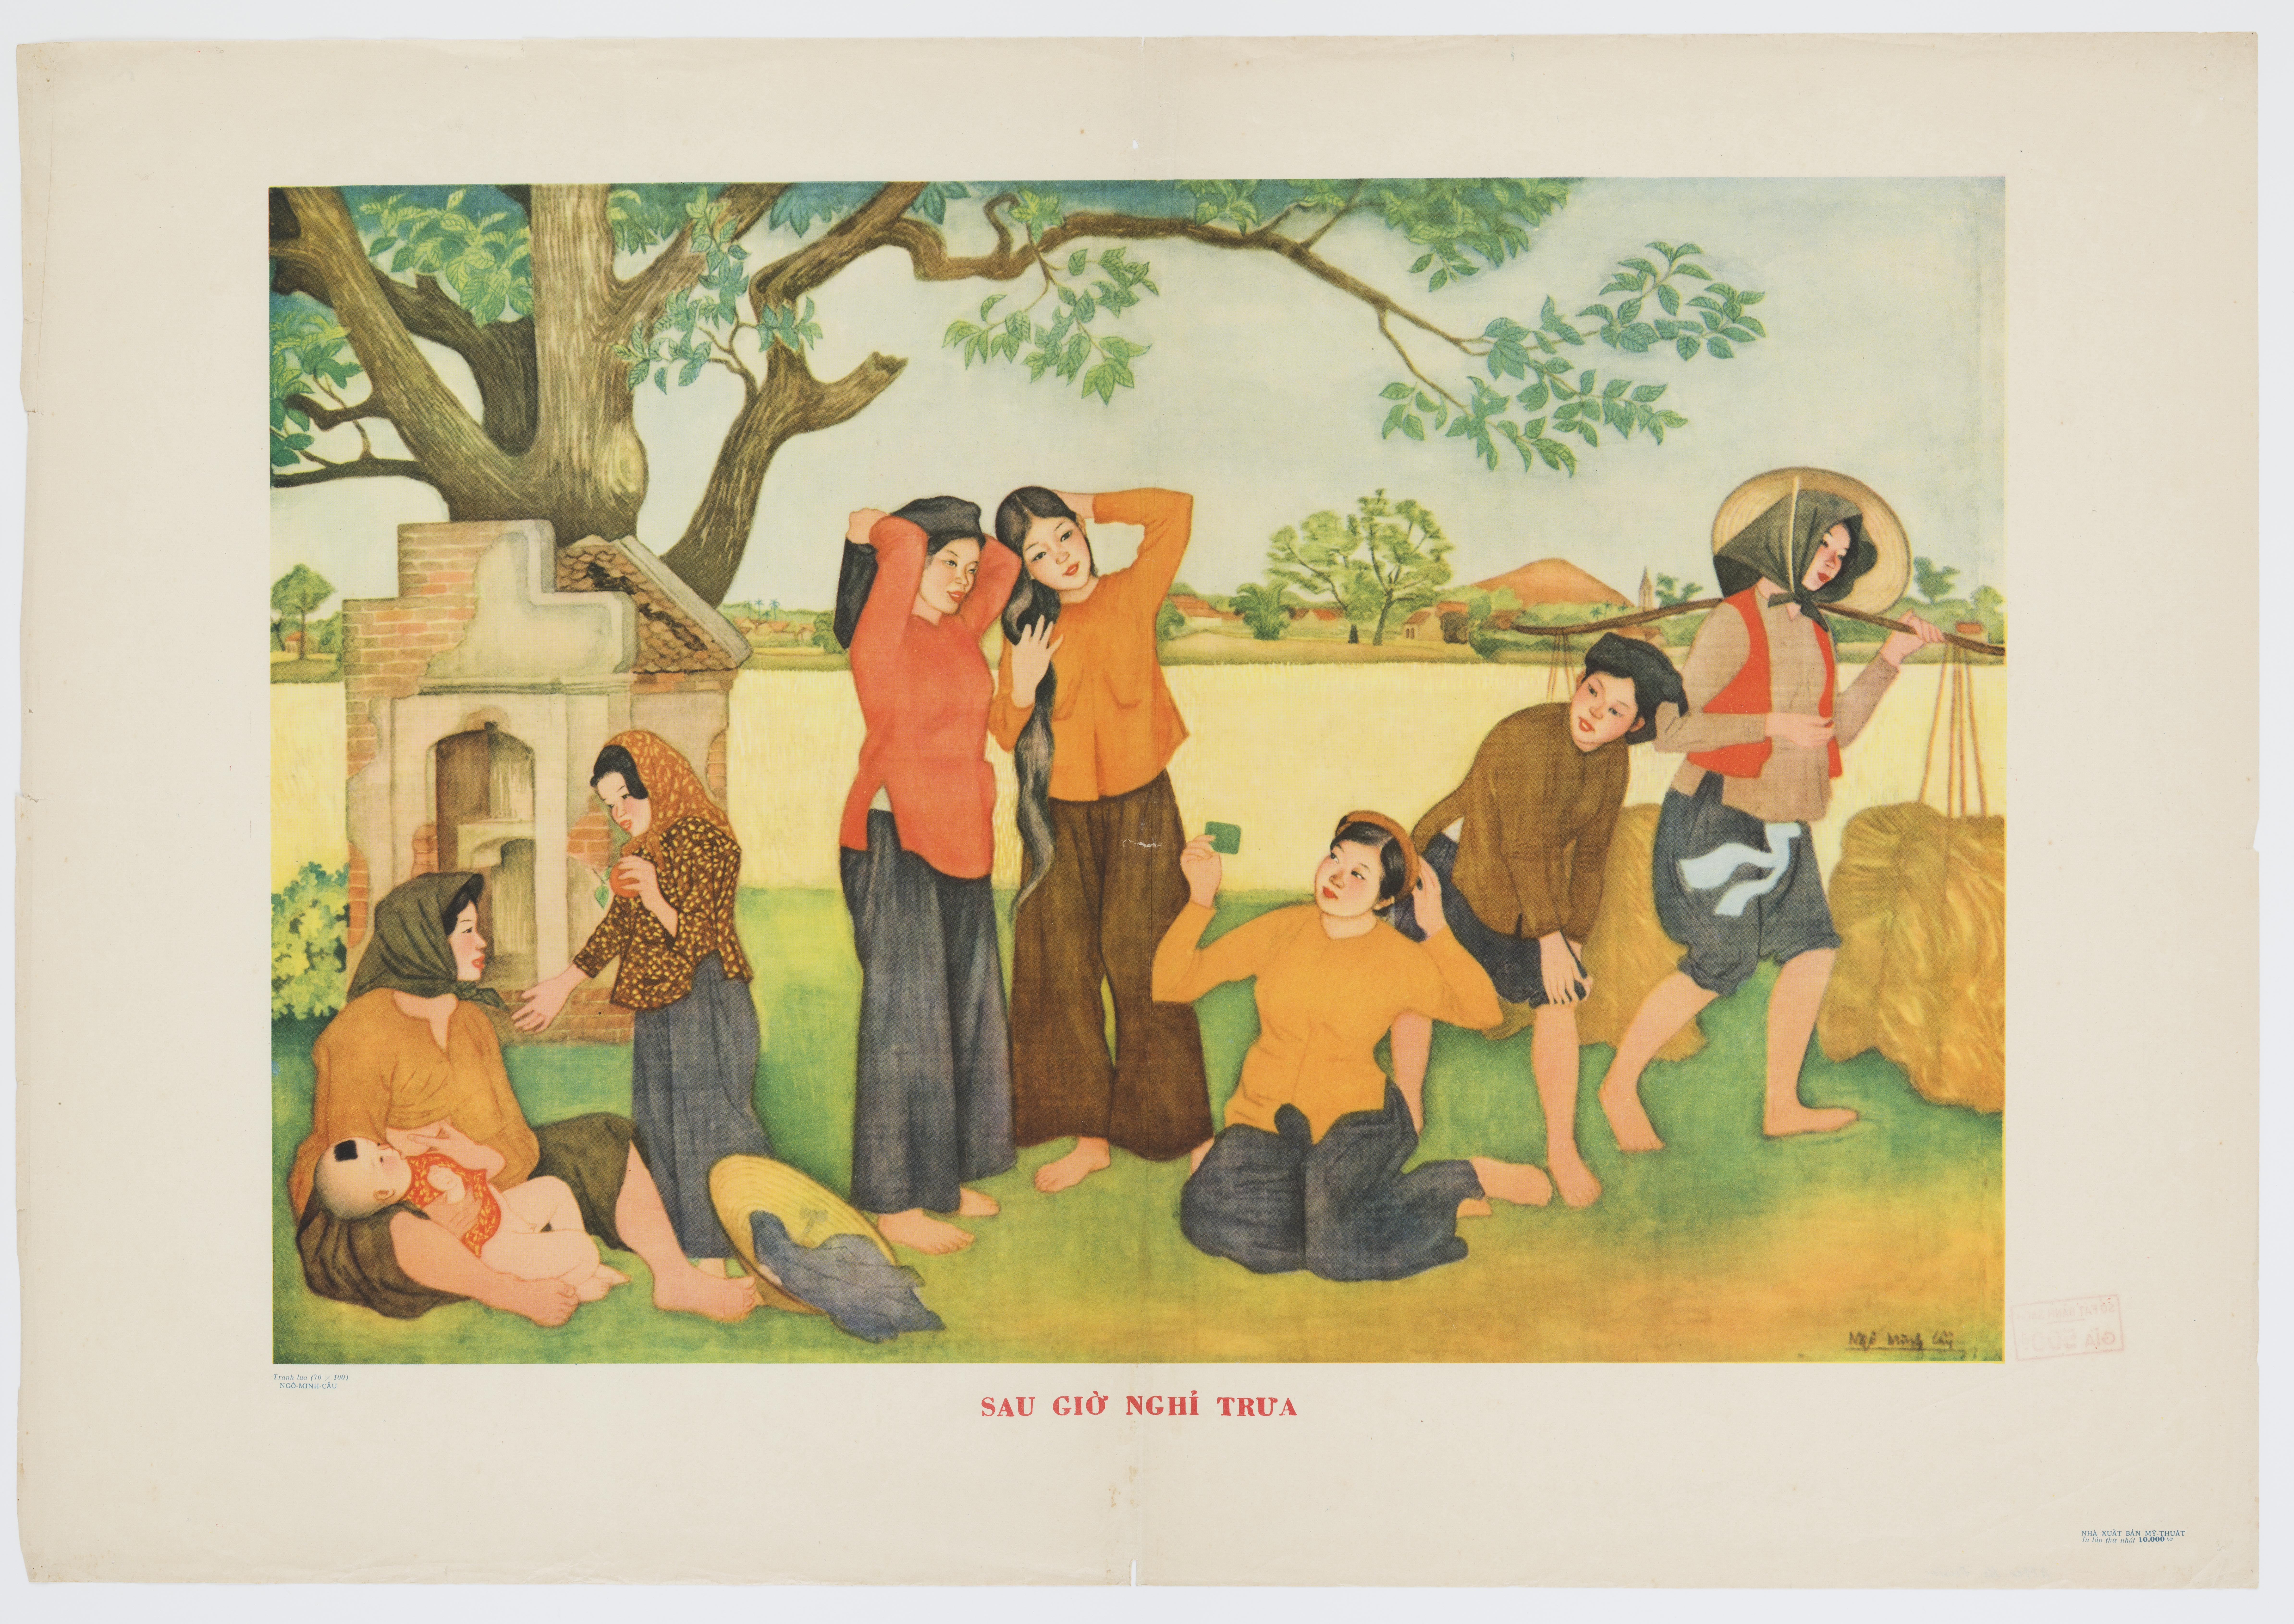 A colourful poster depicting women gathering in a Vietnamese backyard.